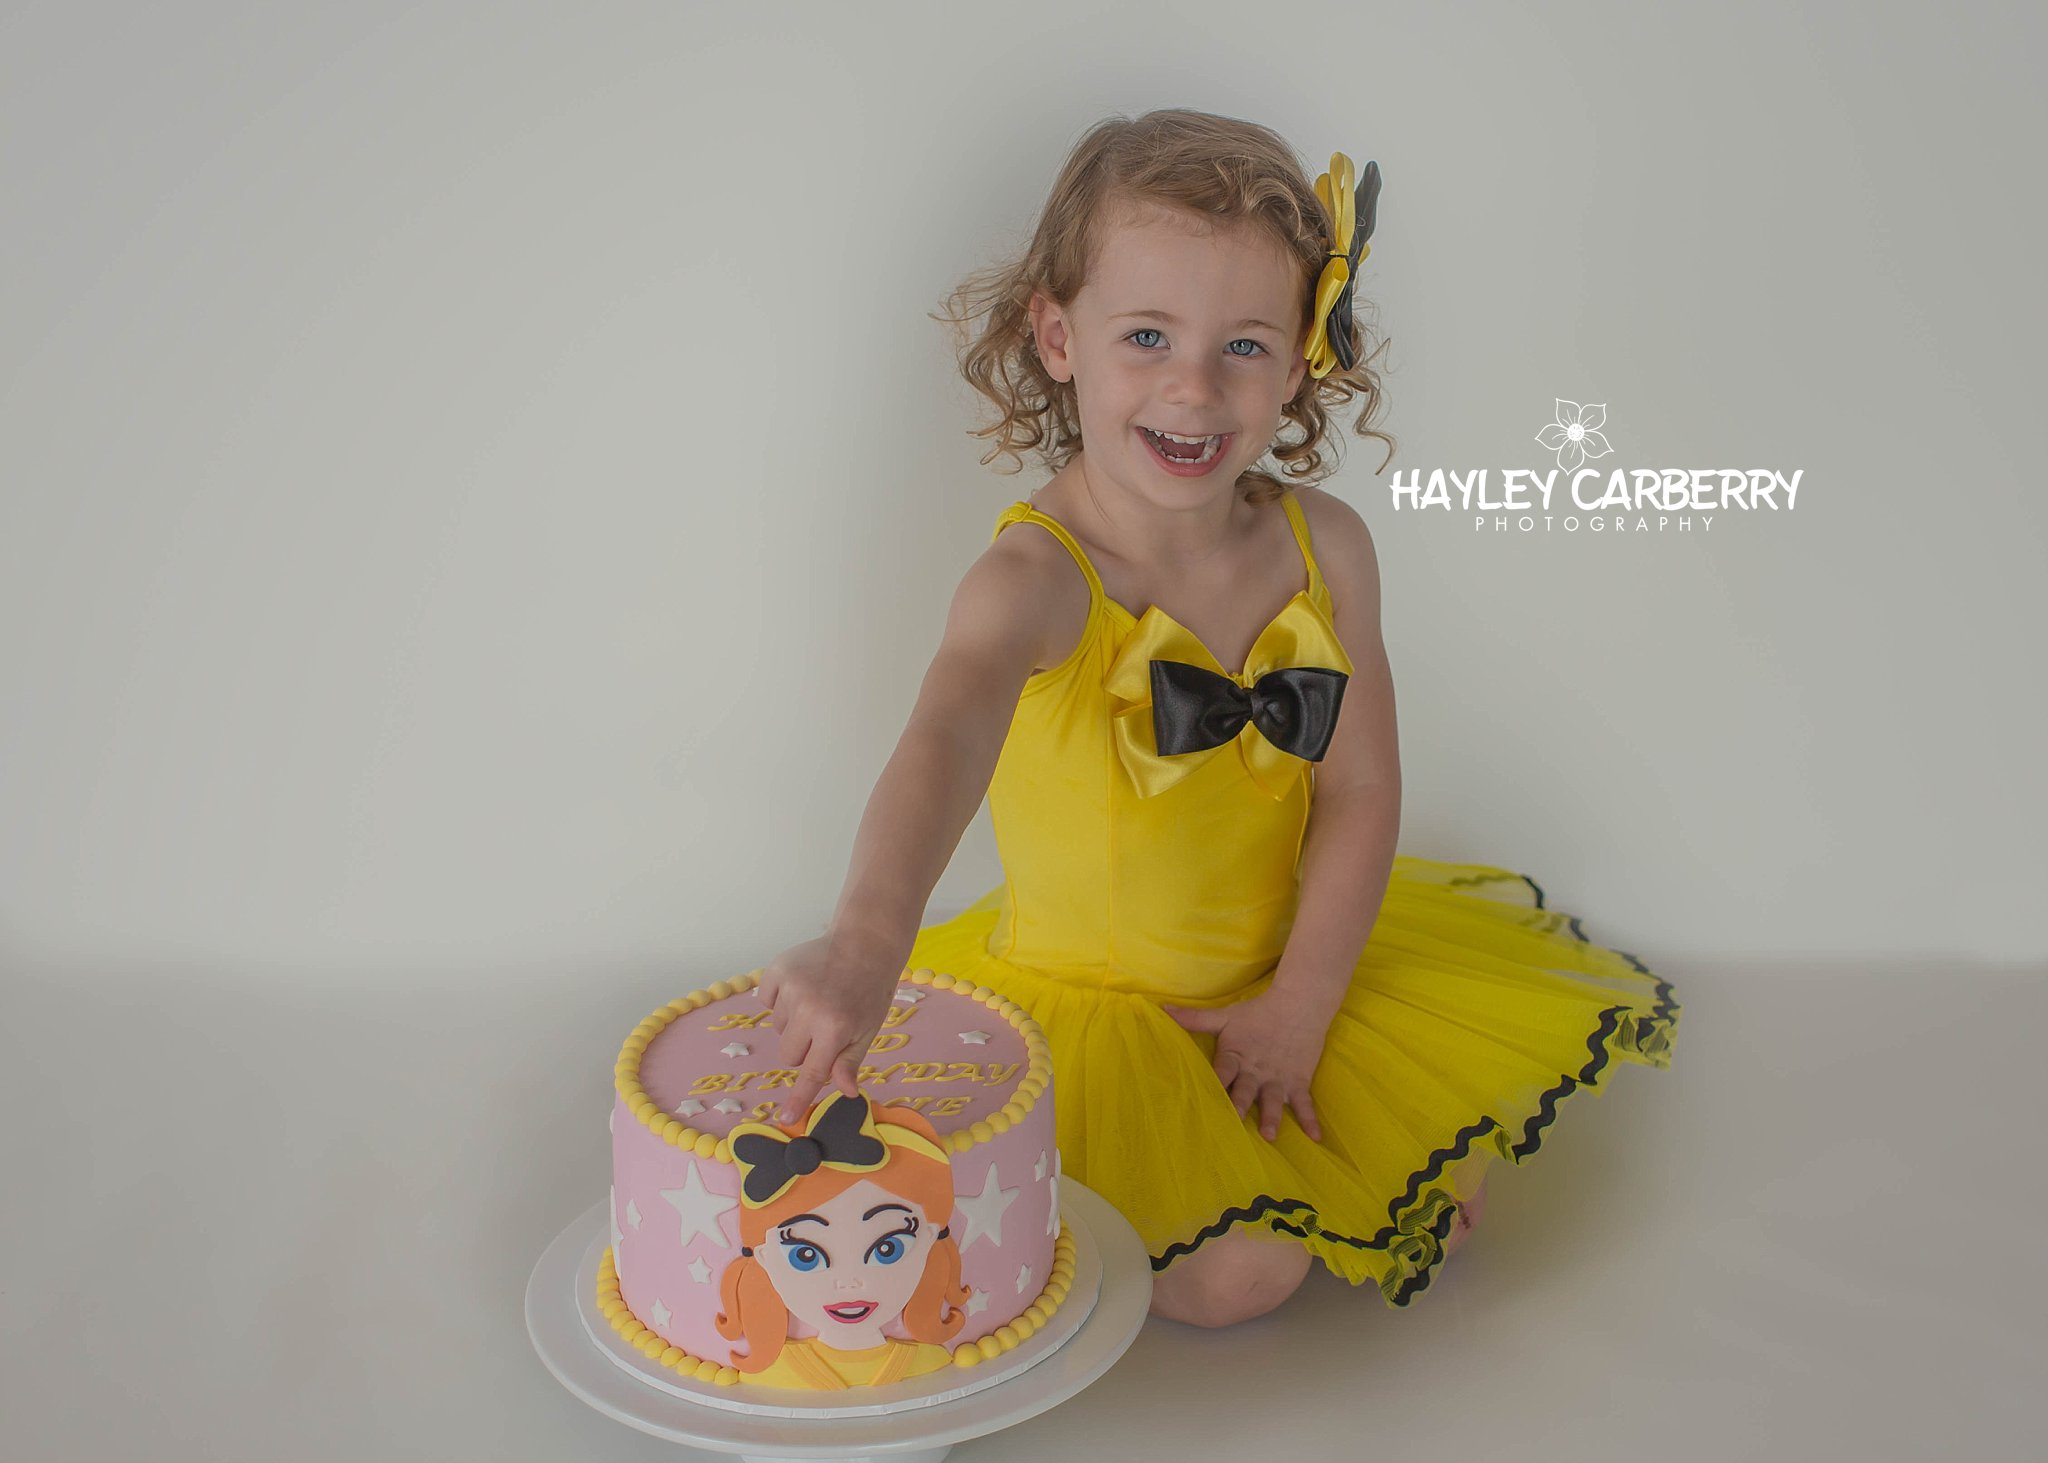 Canberra Newborn, Babies Children Cake Smash Portrait Photographer